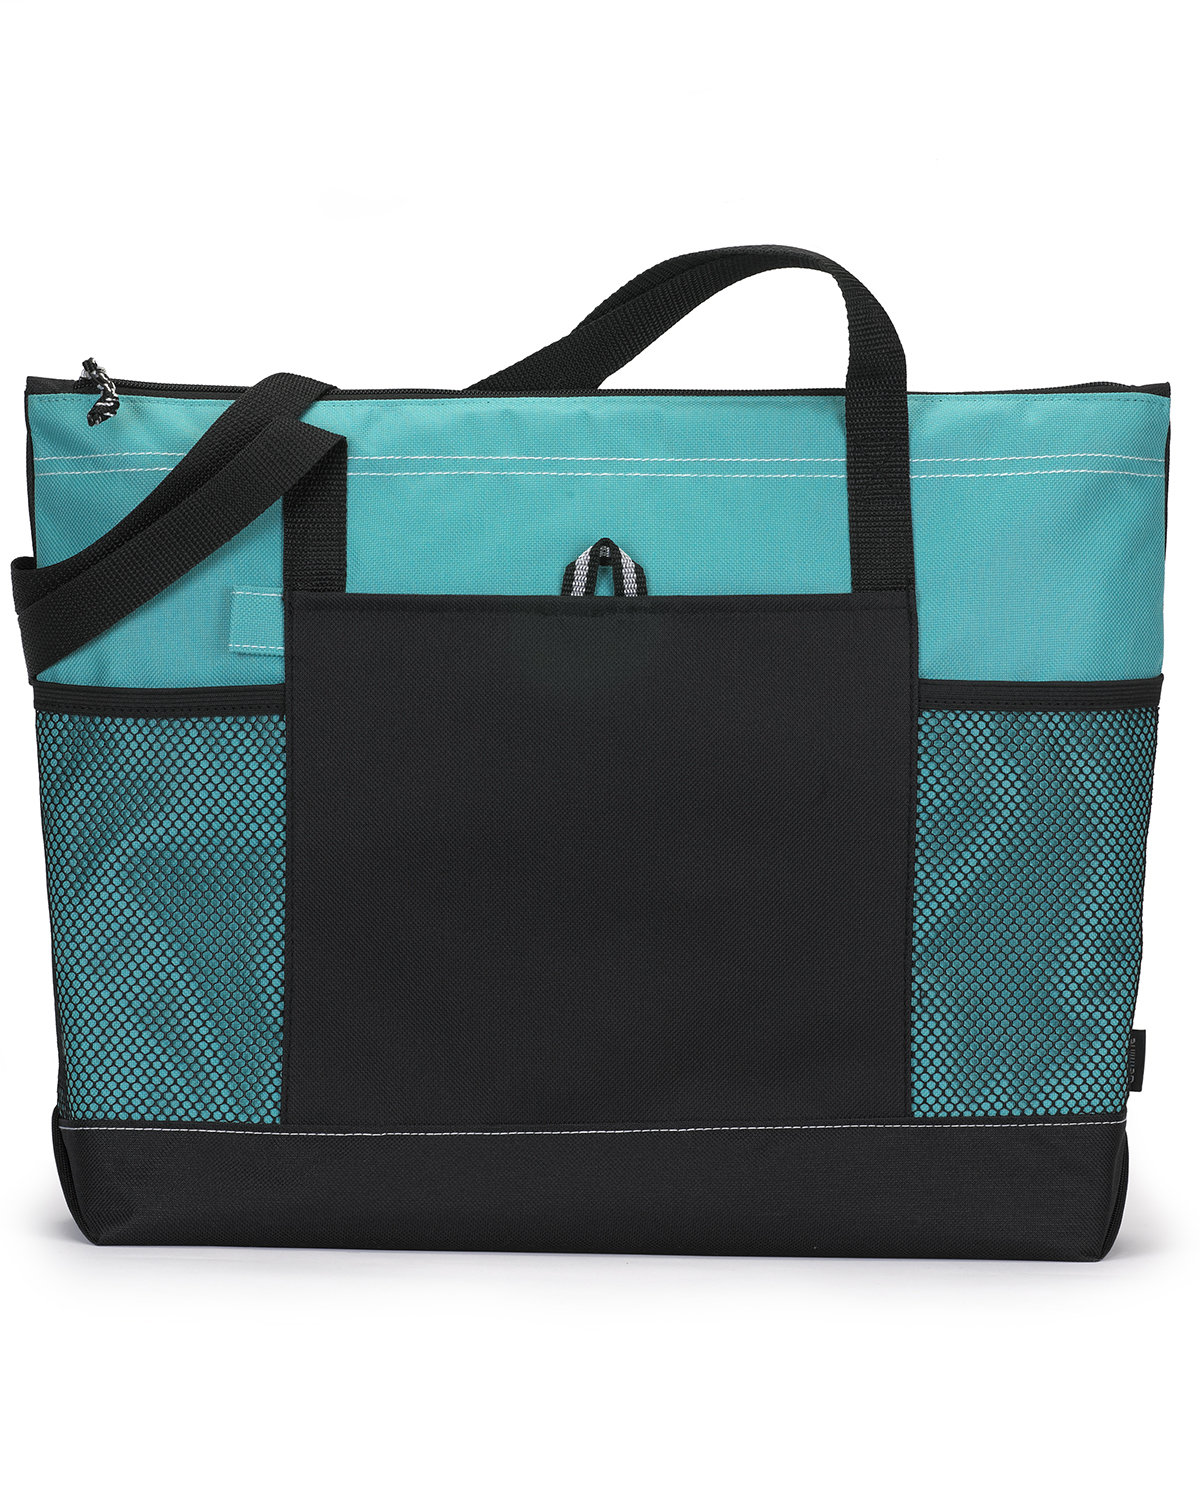 Gemline Select Zippered Tote TURQUOISE